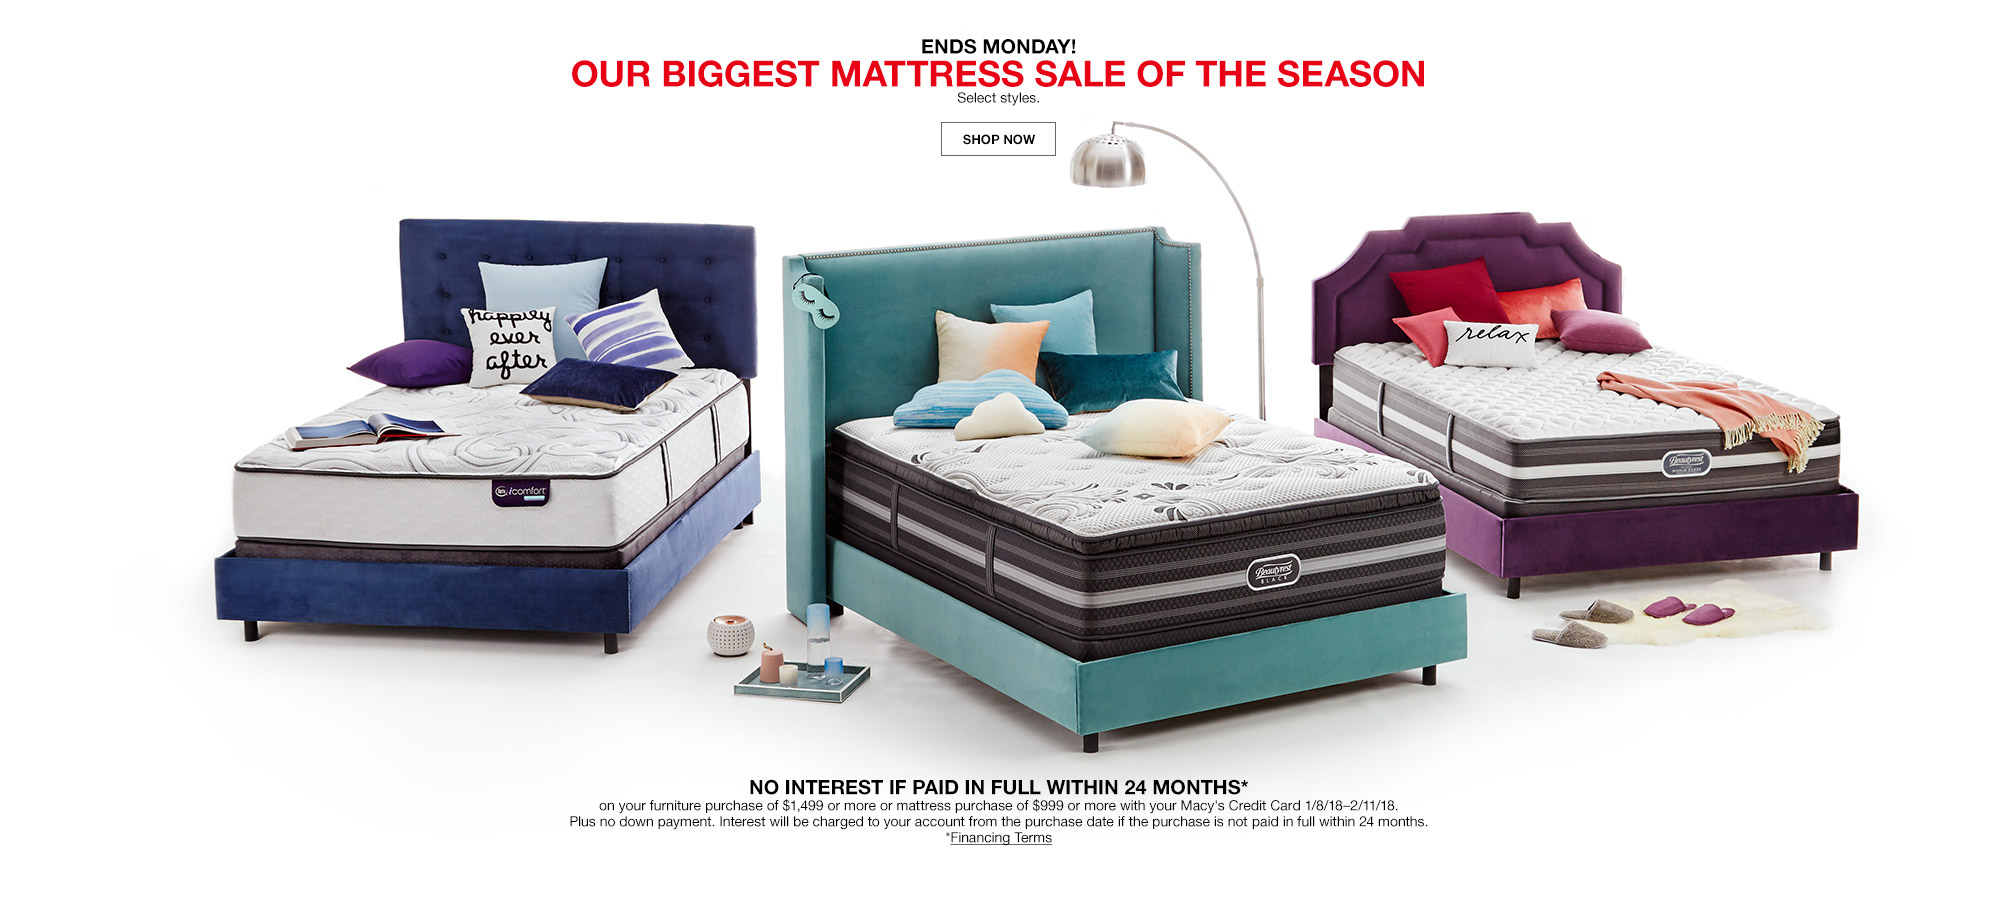 ends monday! our biggest mattress sale of the season. select styles. no interest if paid in full within 24 months on your furniture purchase of $1499 or more or mattress purchases of $999 or more with your macys credit card january 8th to february 11th 2018. plus no down payment. interest will be charged to your account from the purchase date if th	e purchase is not paid in full within 24 months.